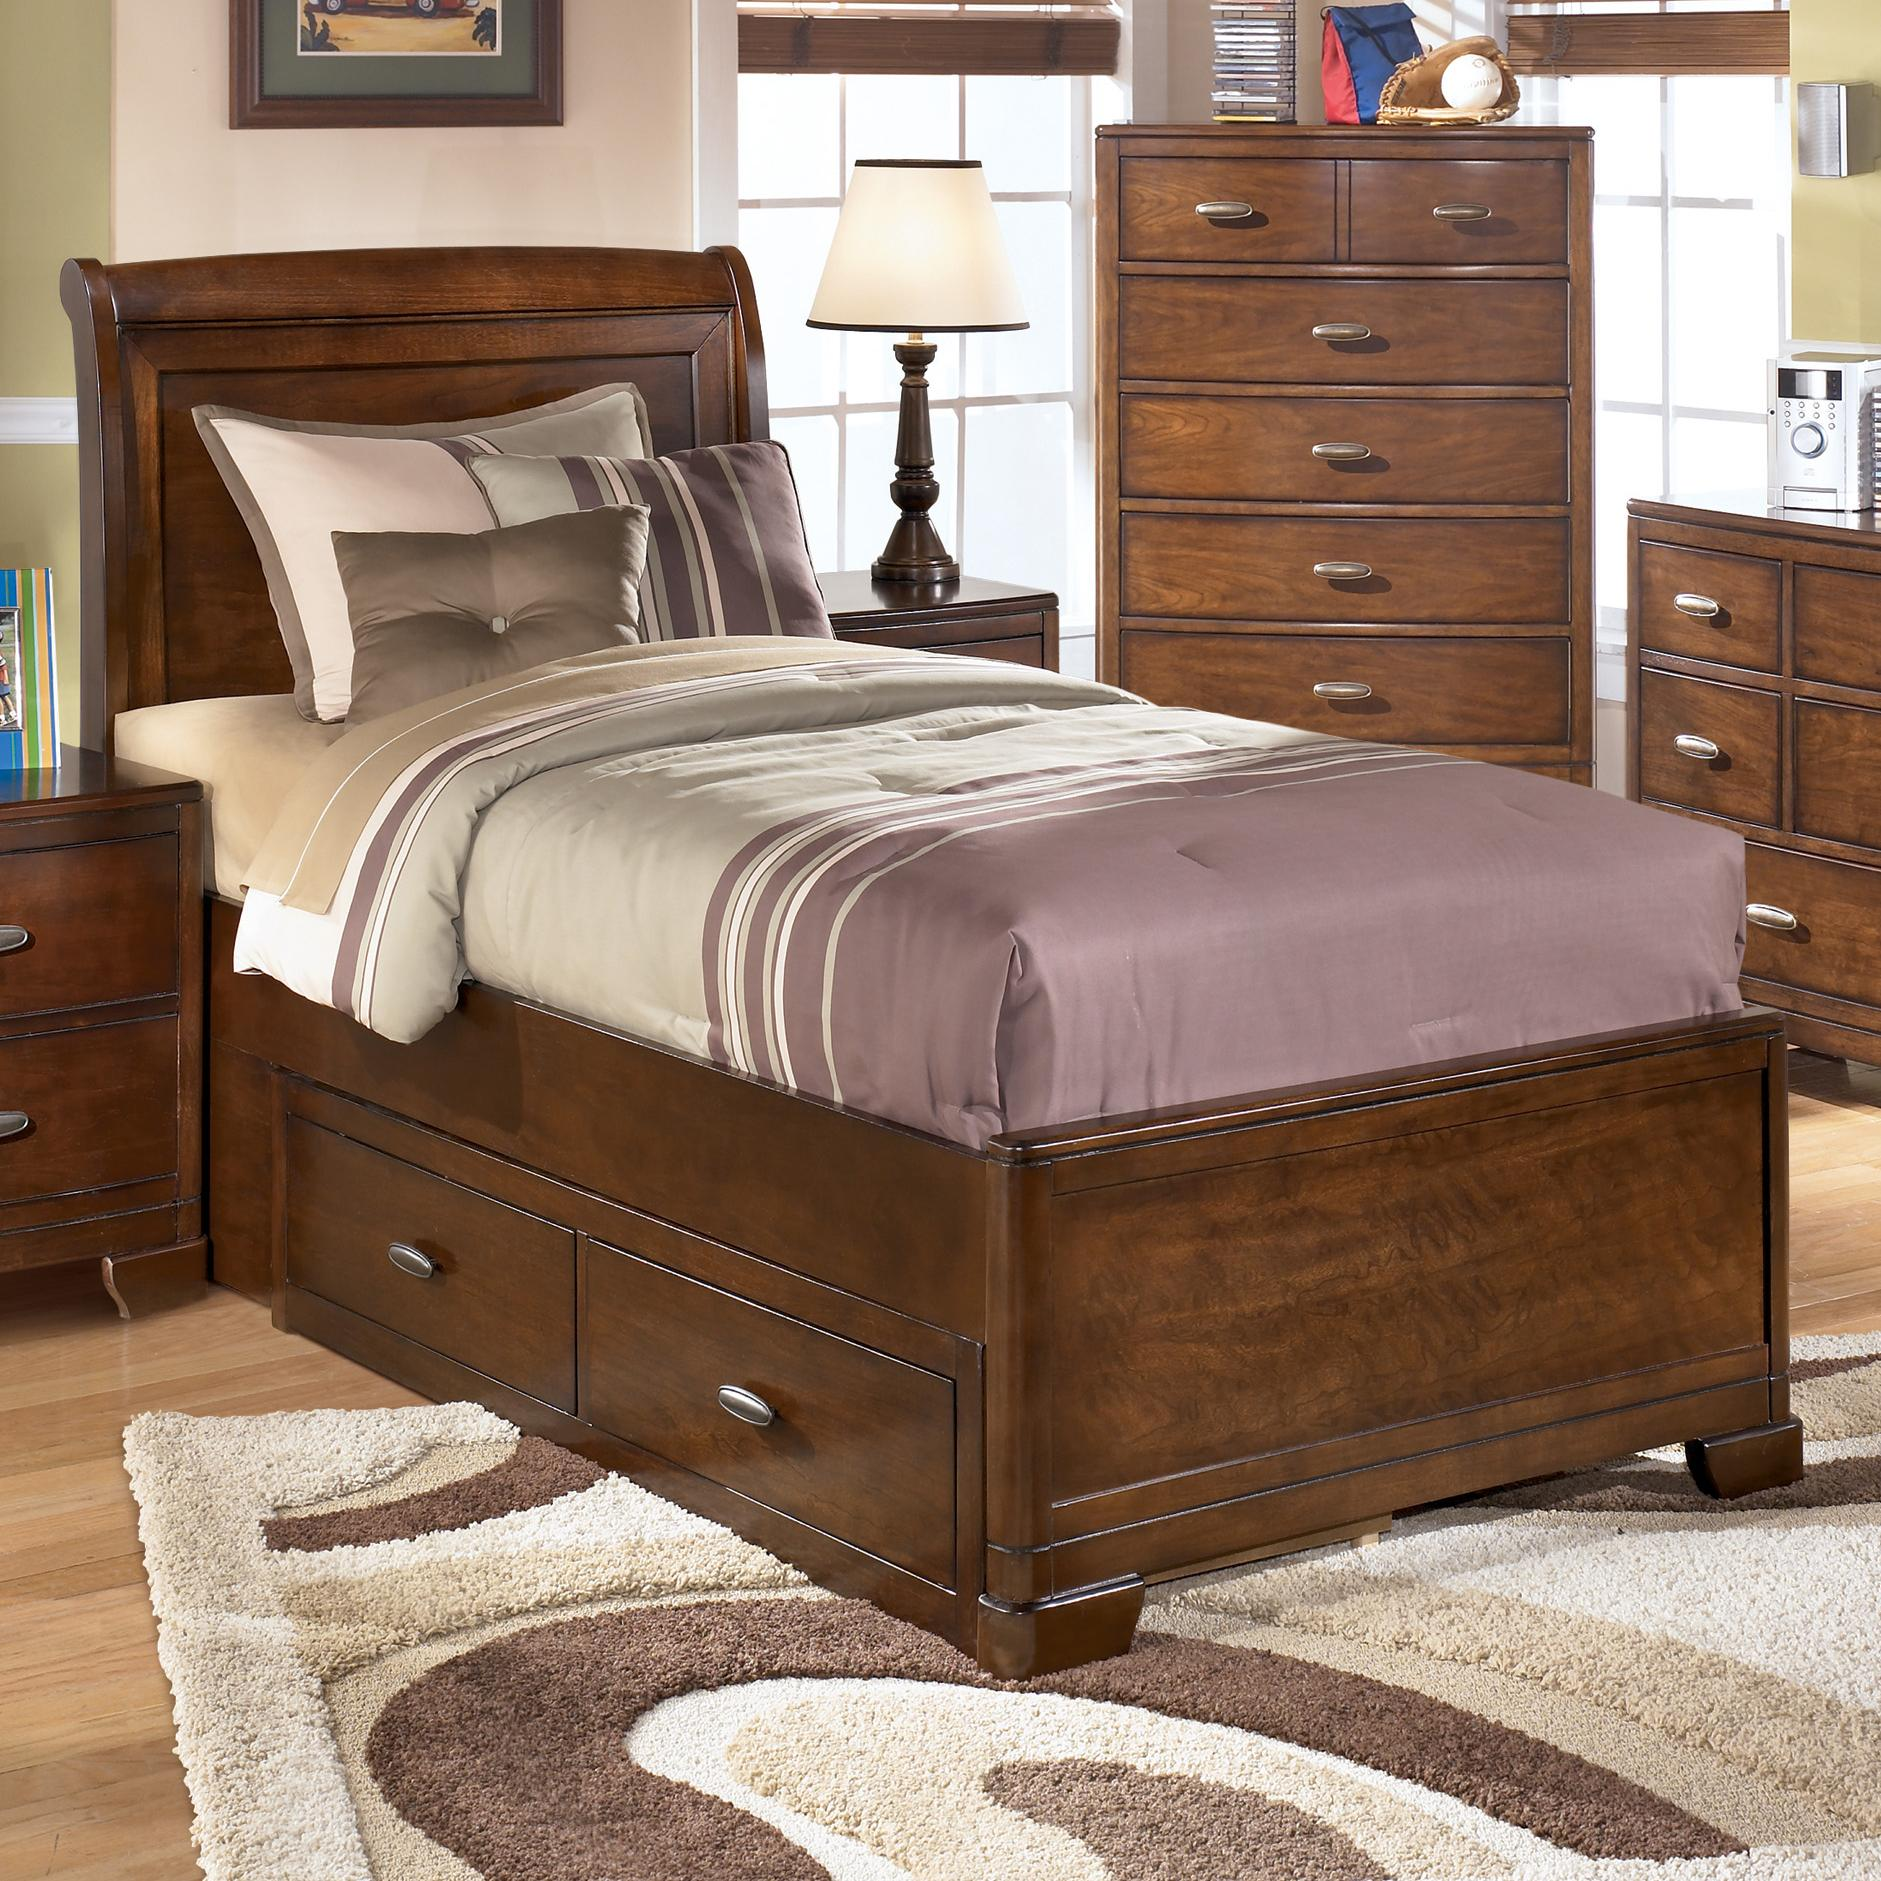 Signature Design By Ashley Alea Twin Bed With 2 Storage Drawers  # Muebles Dearden'S